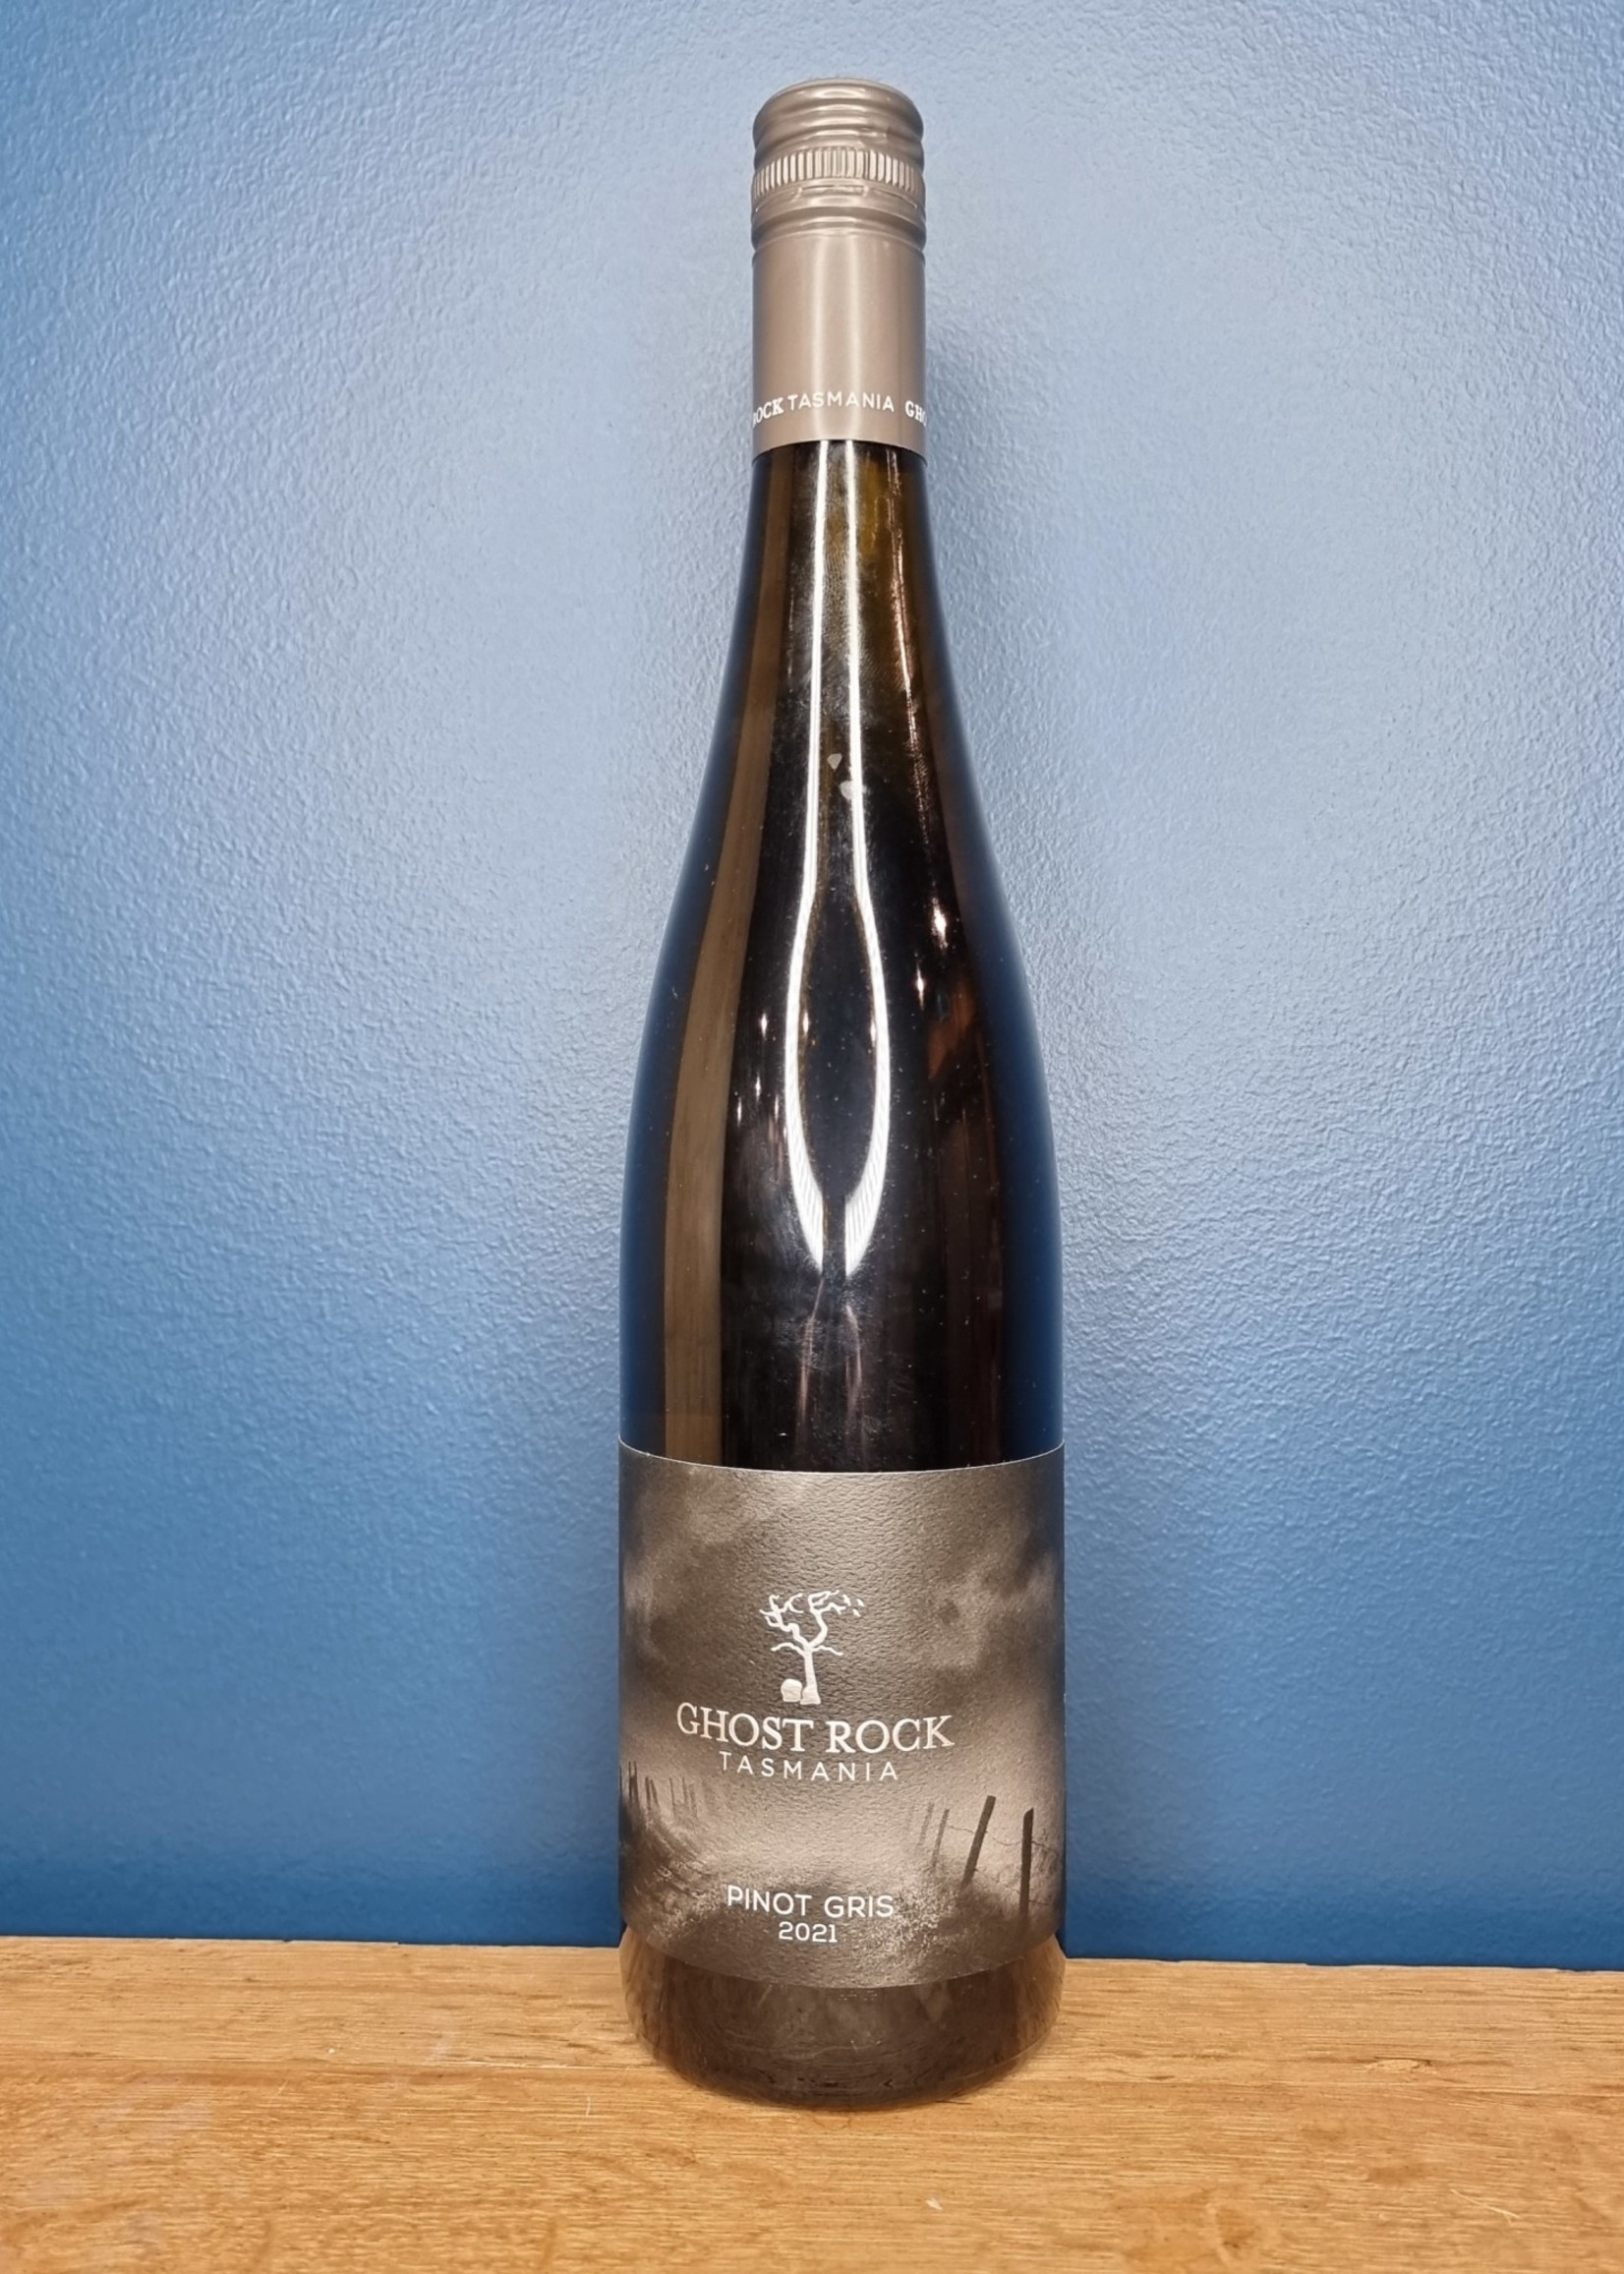 Ghost Rock Ghost Rock Pinot Gris 2021